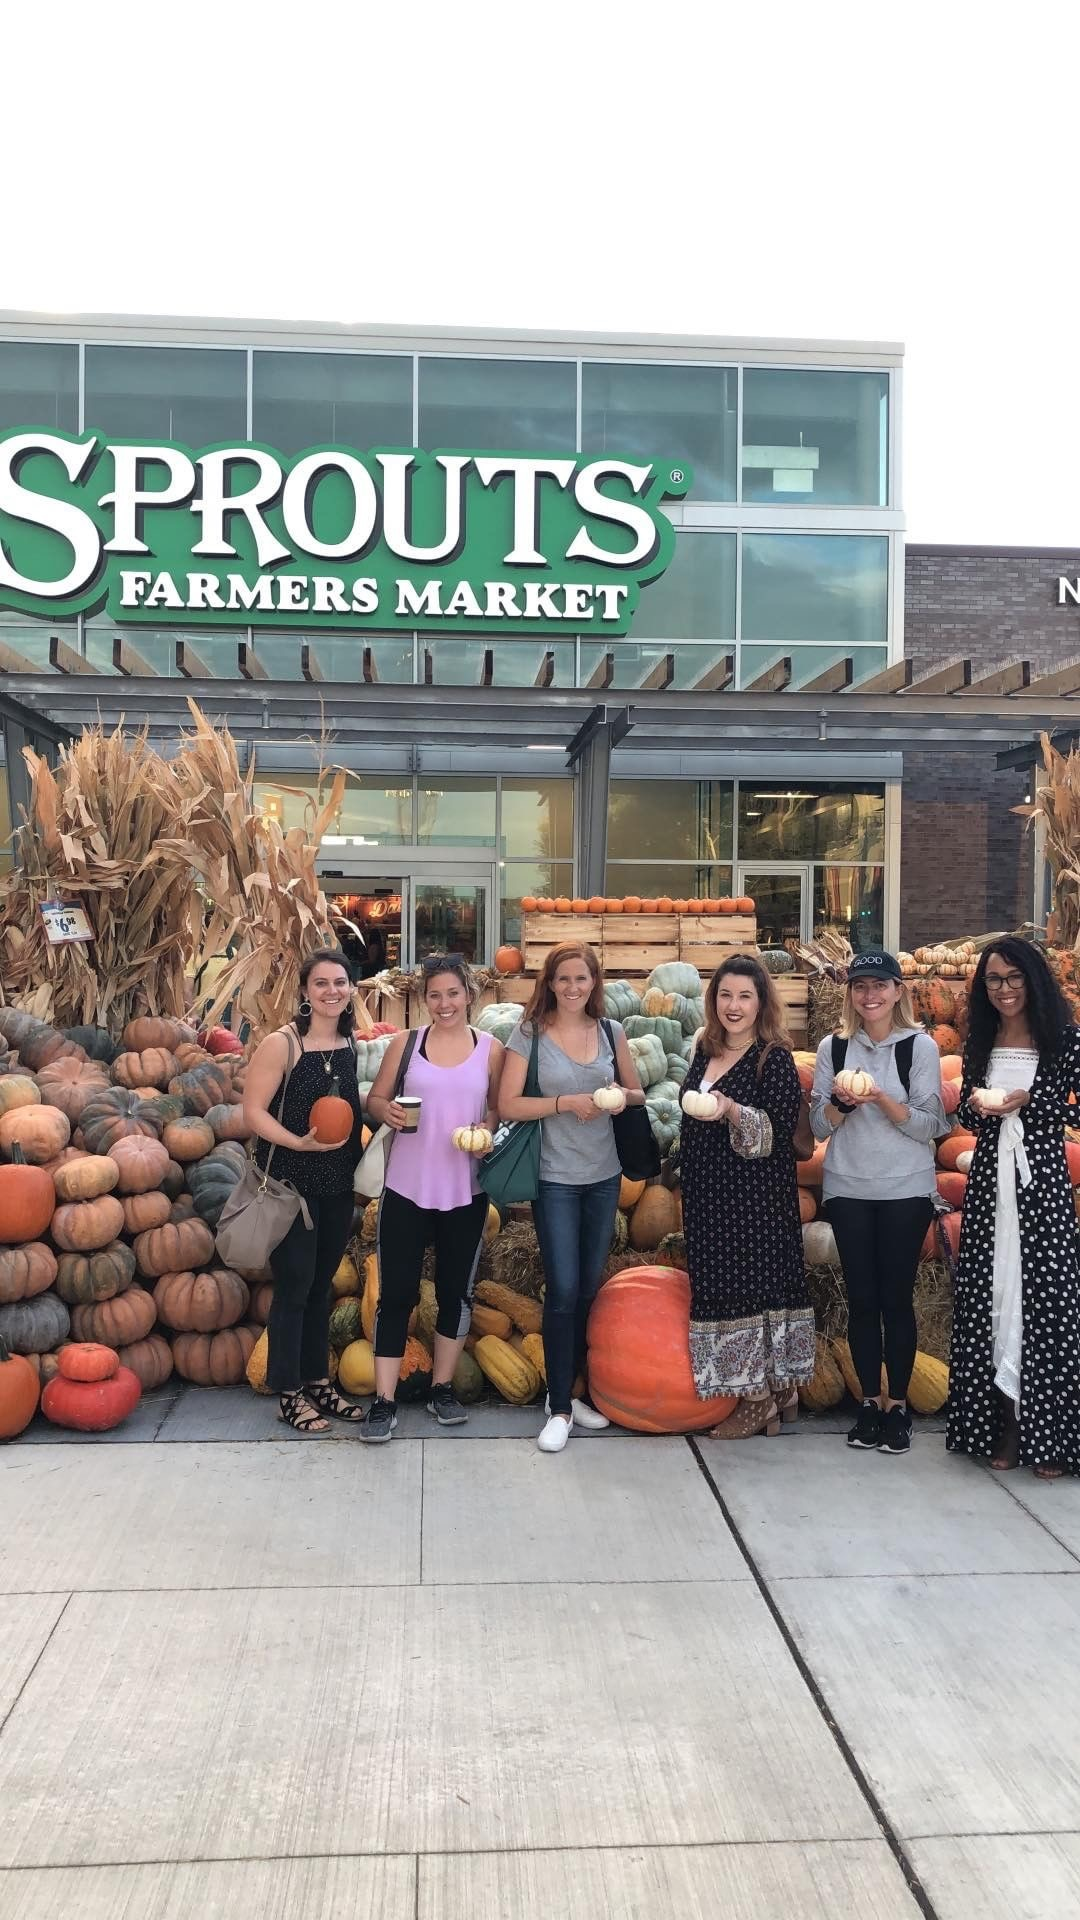 Sprouts Farmers Market - your favorite grocery store - is now open in Philly!